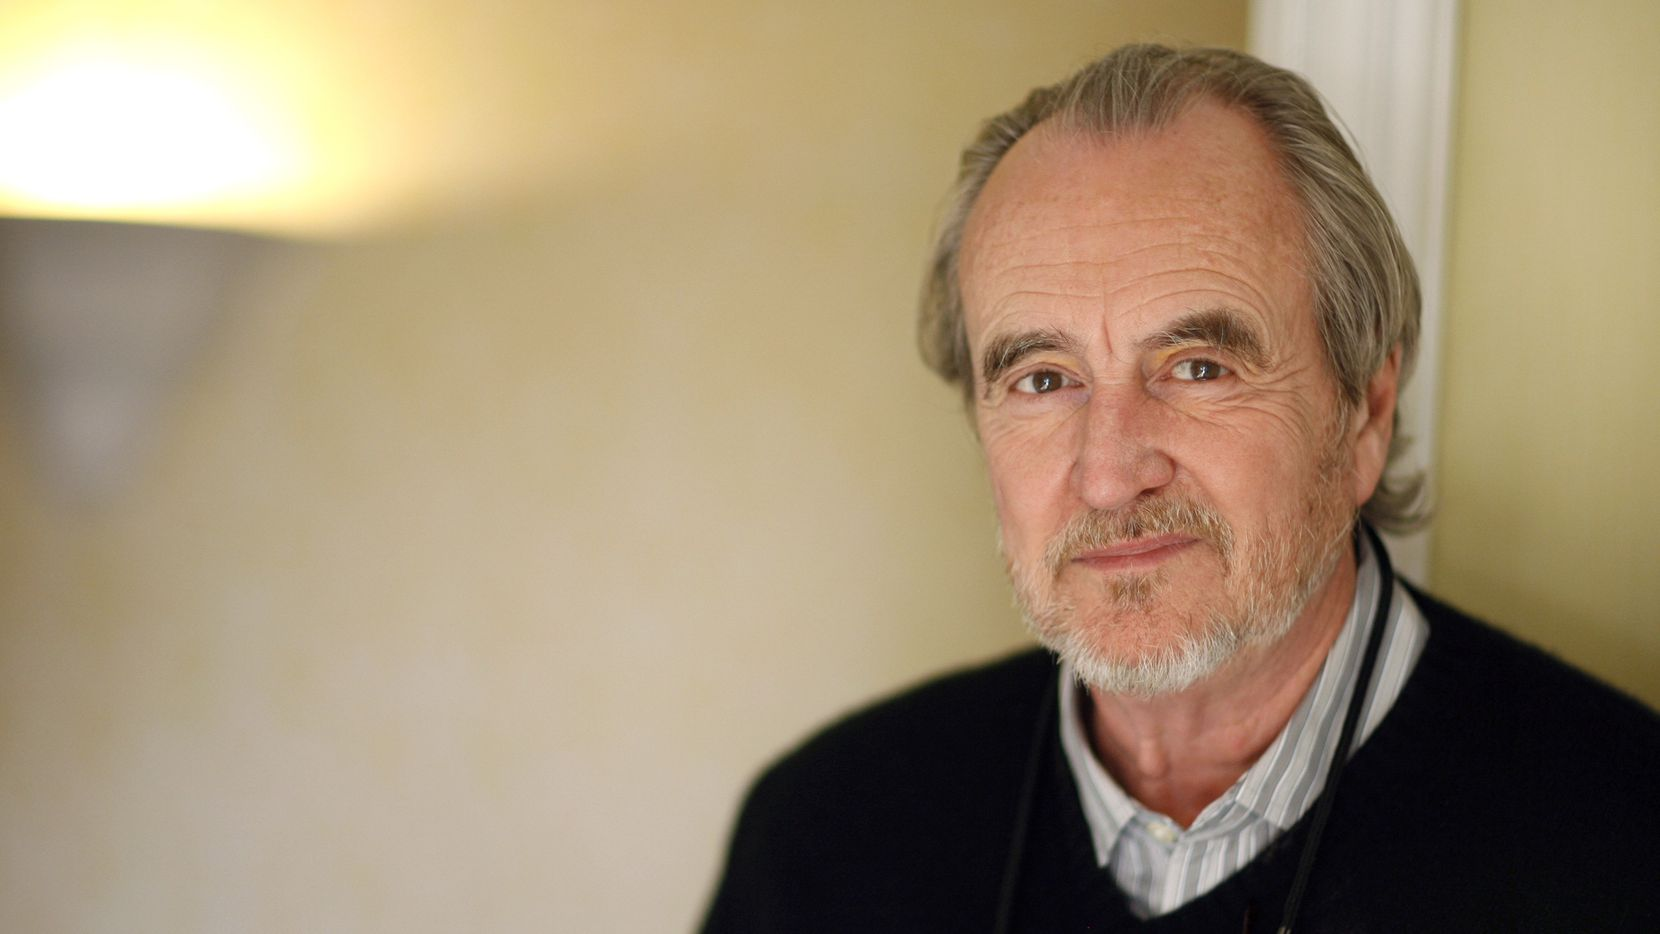 Director Wes Craven poses for a portrait in Los Angeles March 1, 2009.